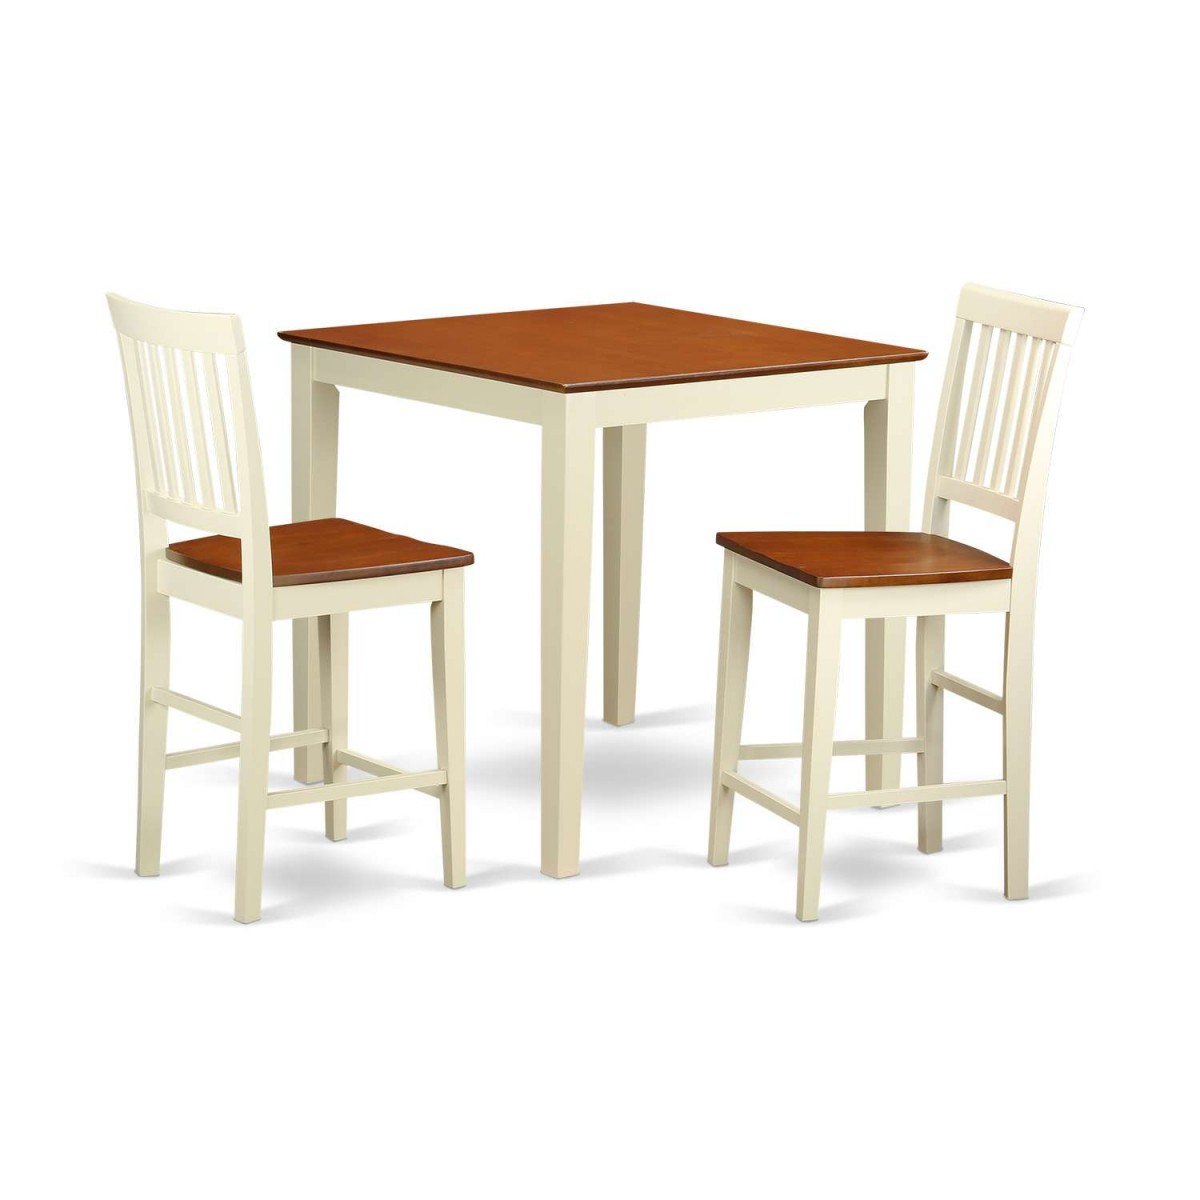 Cheap Pub Tables And Chairs: East West Furniture Vernon 3 Piece Pub Table Set